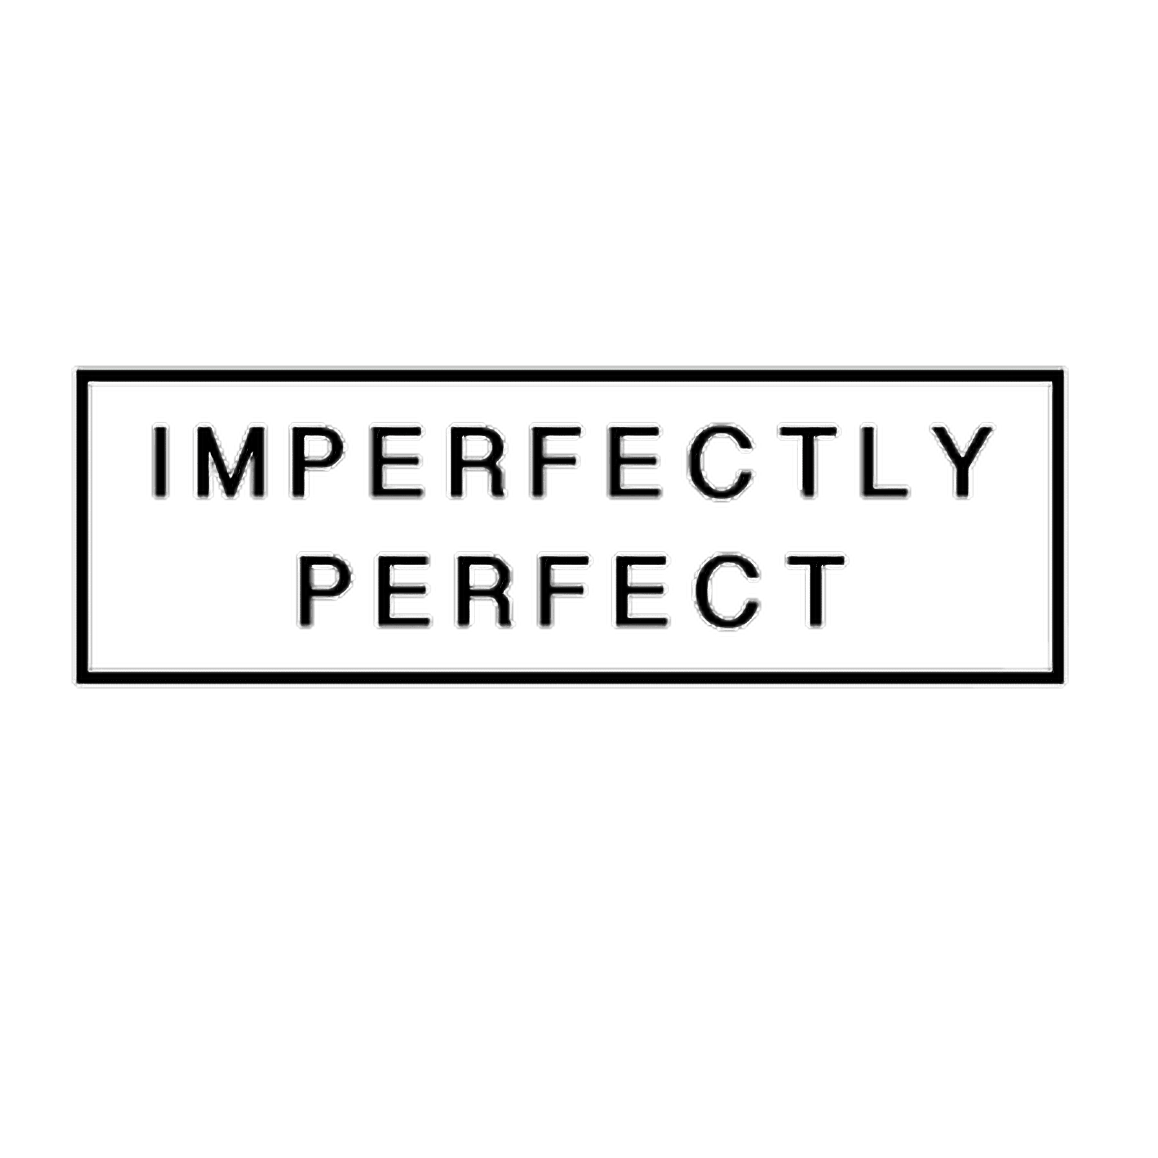 imperfect imperfectly perfect perfection...